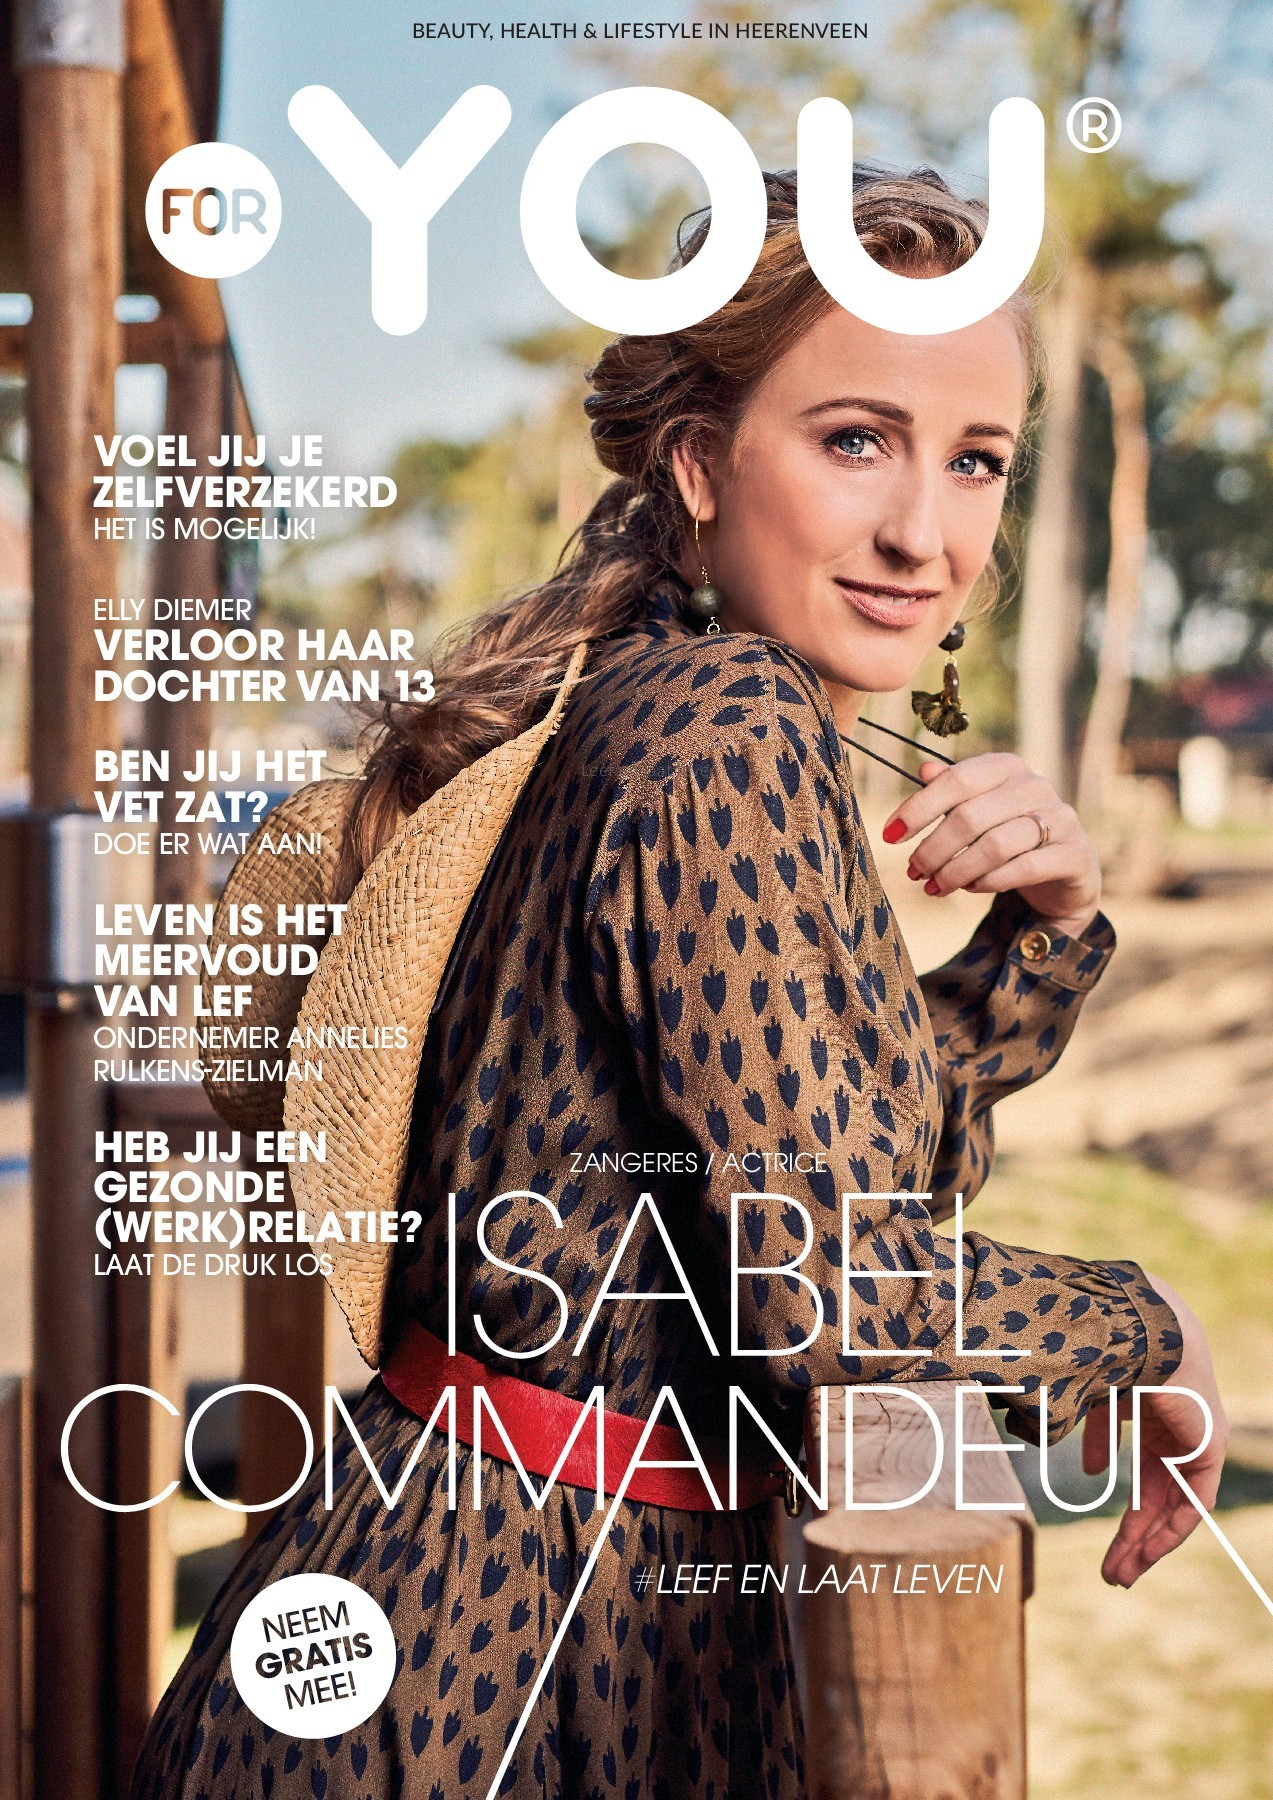 Danie Bles Zus Foryou Magazine Heerenveen 2019 01 Pages 1 40 Text Version